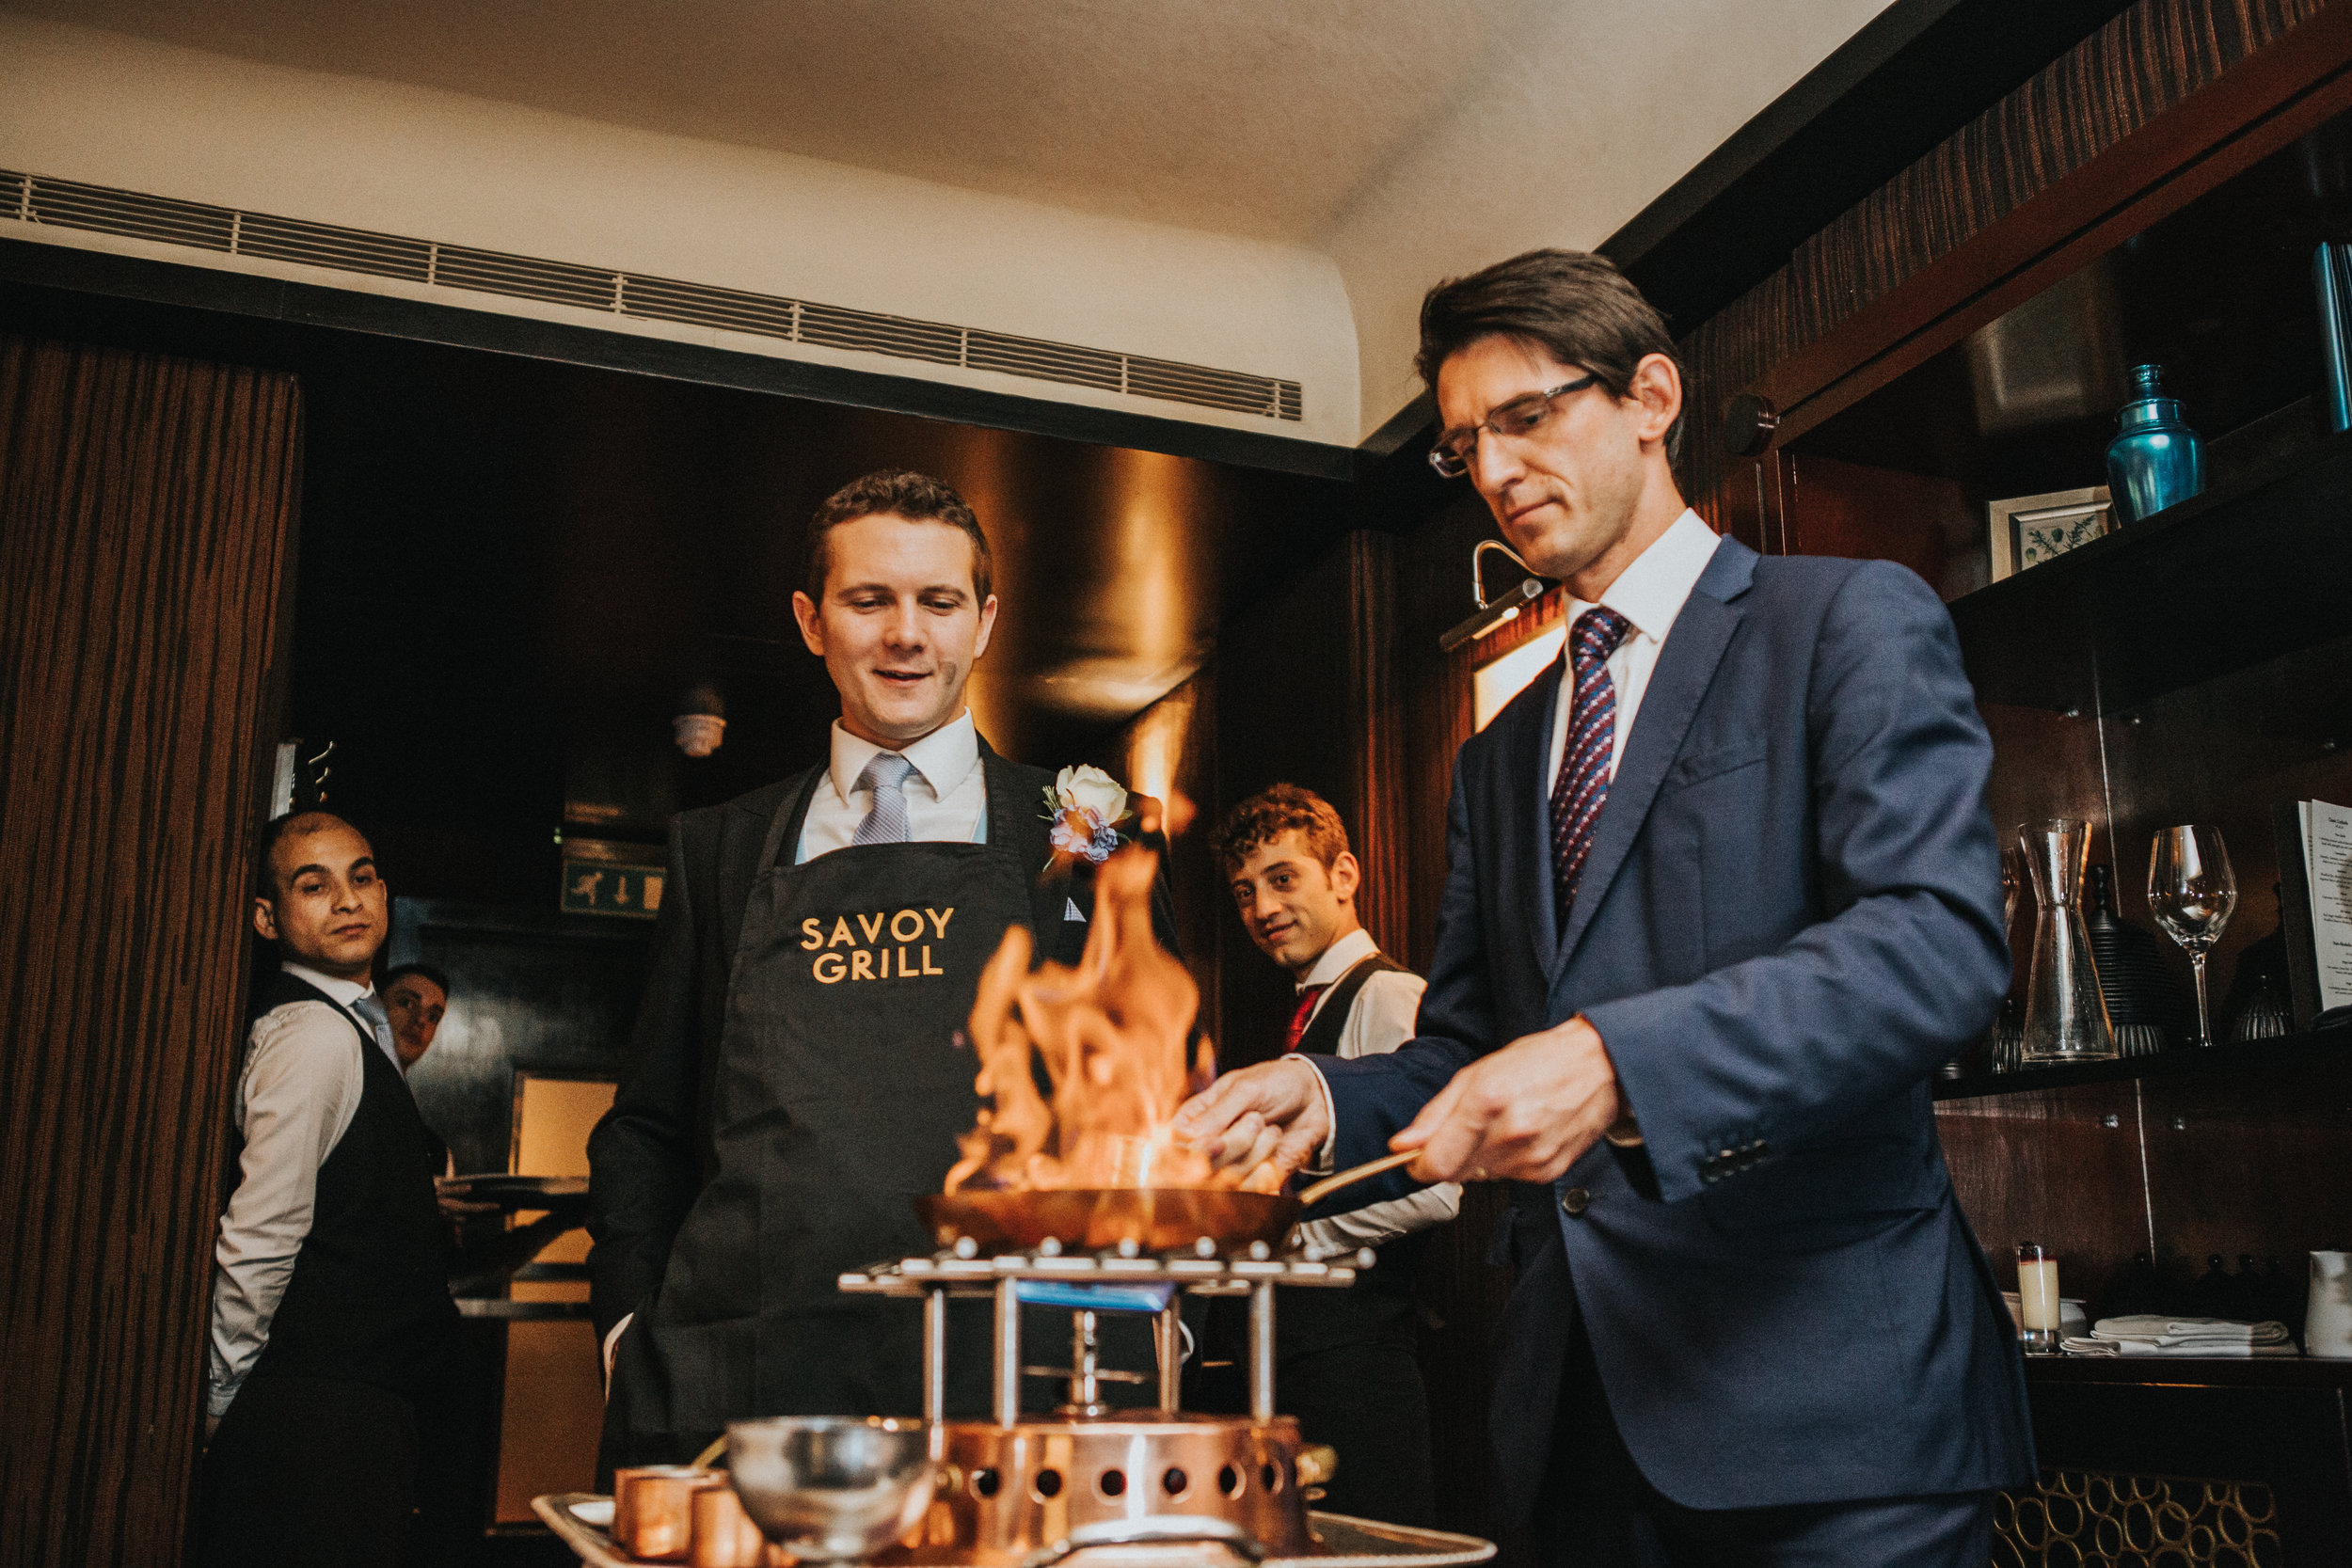 london-wedding-photography-wimbledon-wandsworth-town-hall-savoy-grill-dining-room-crepes-flambe-89